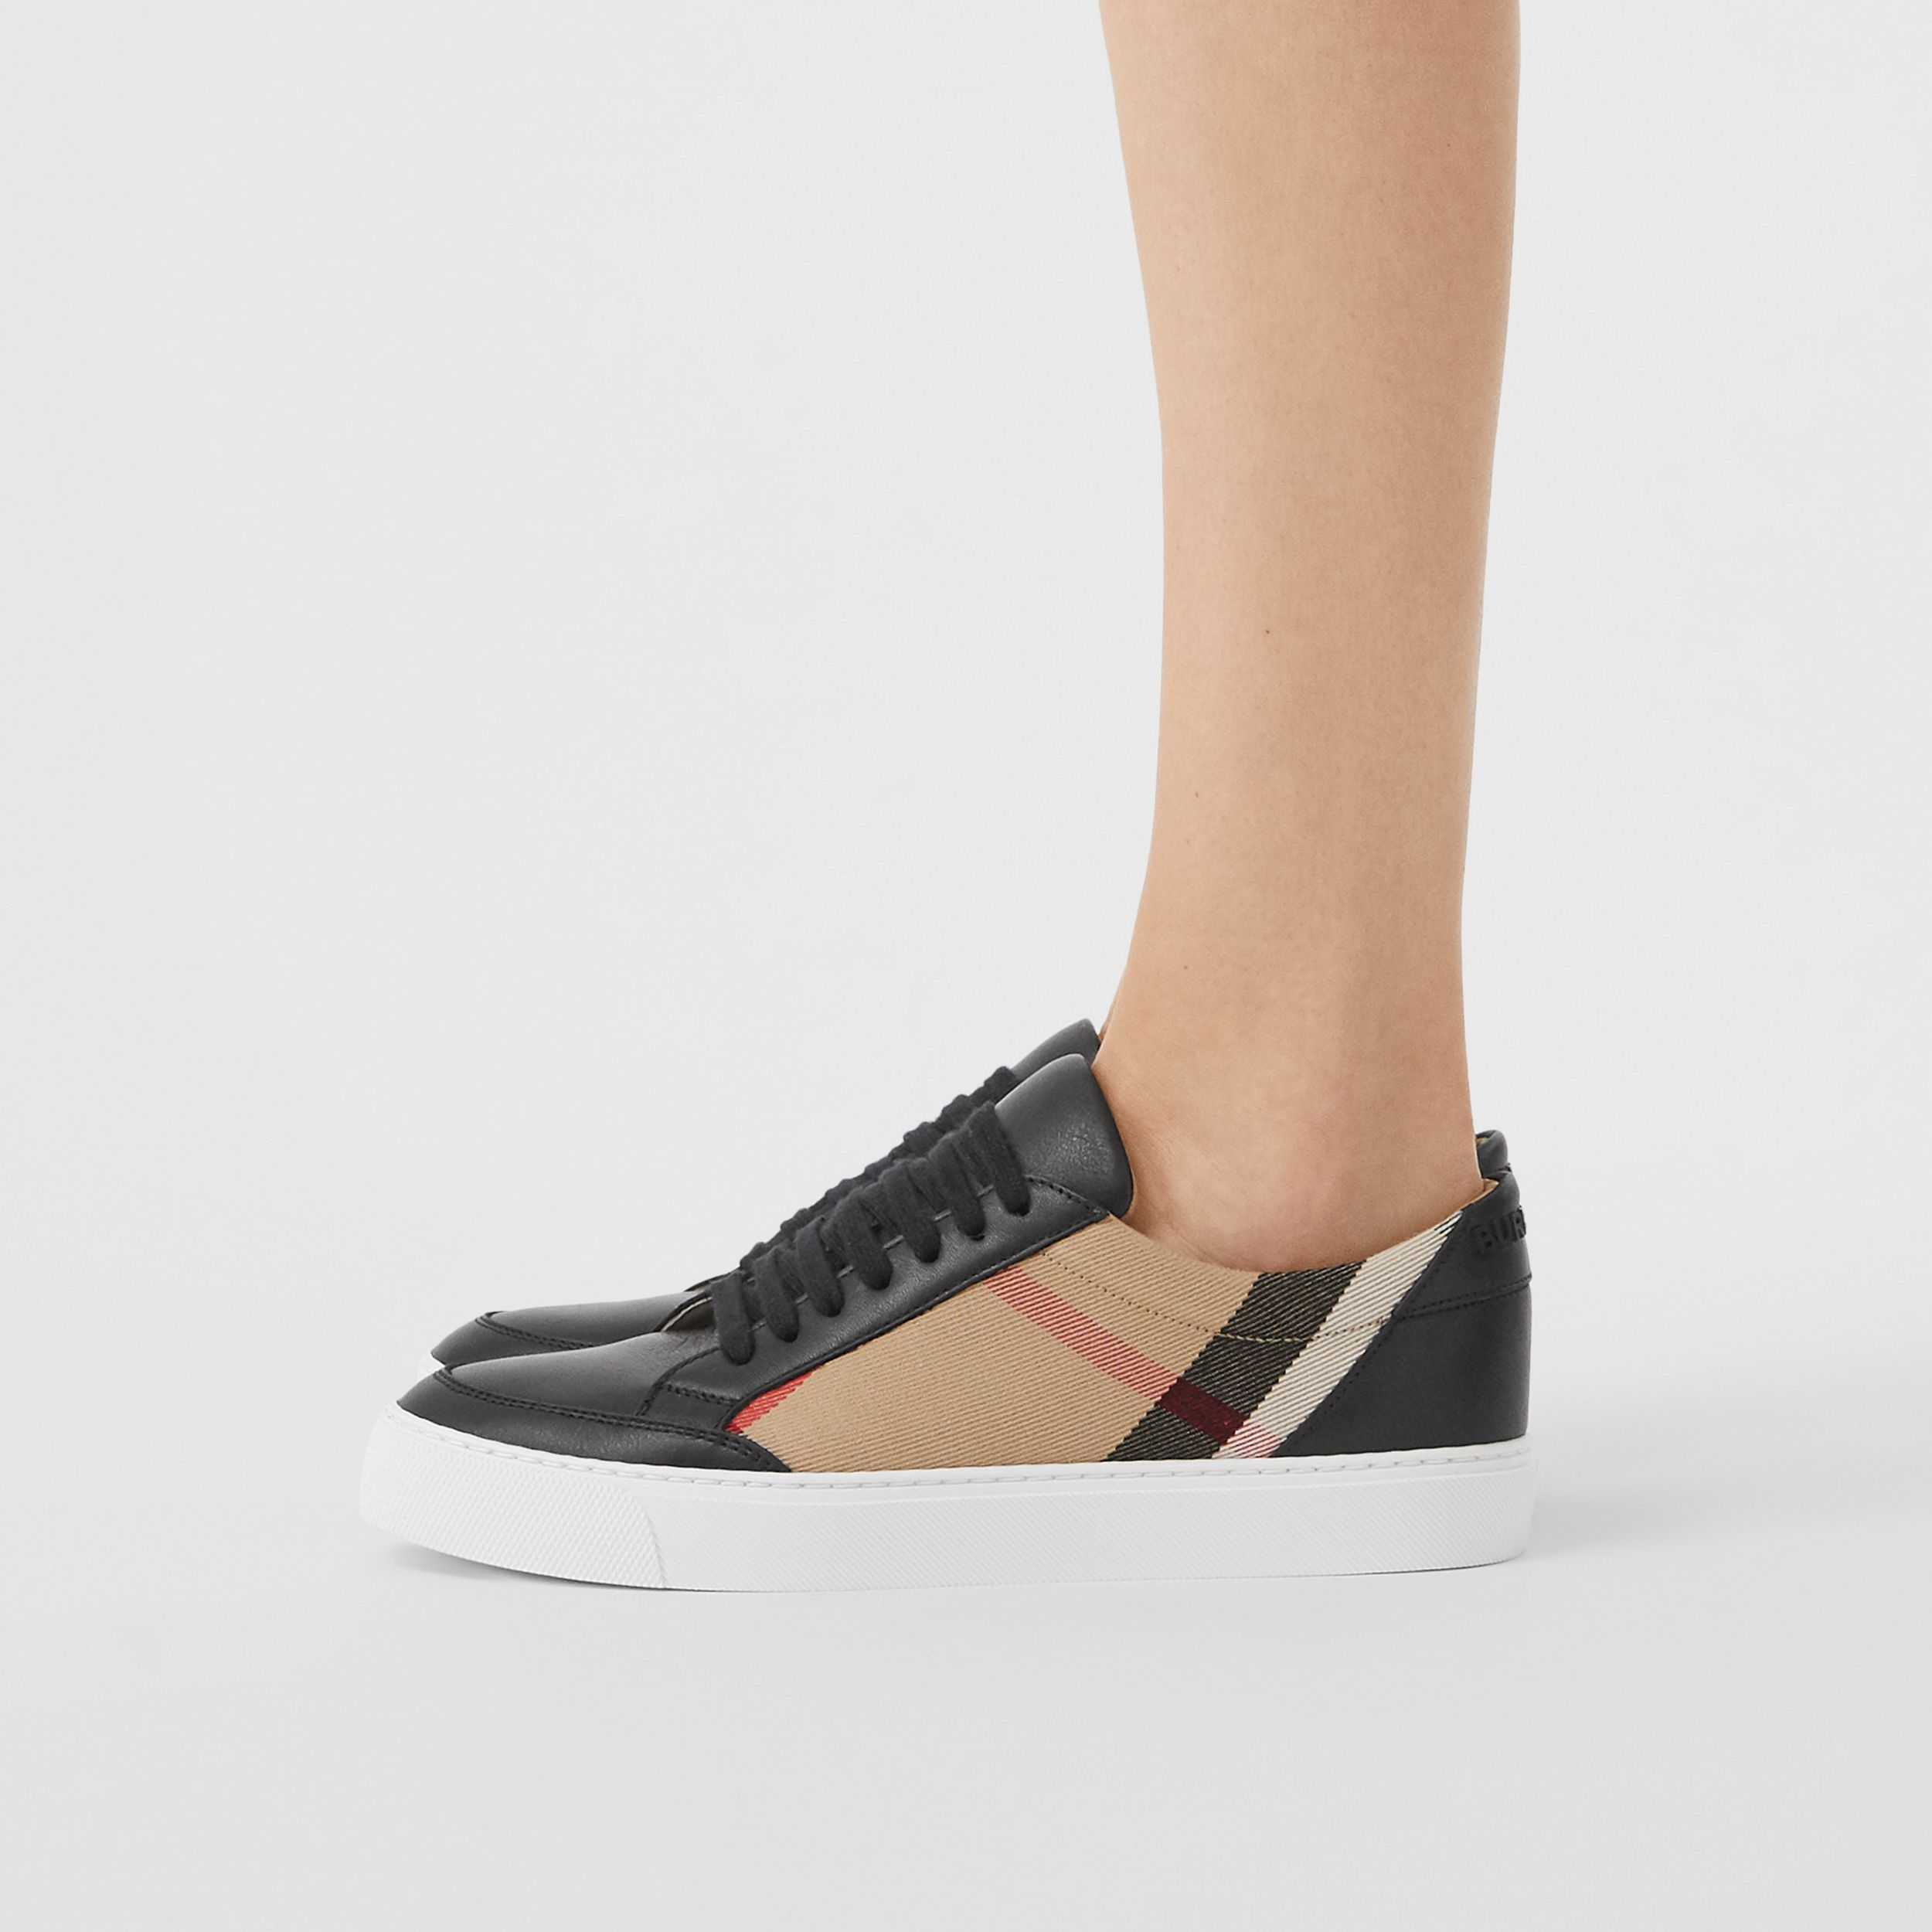 House Check and Leather Sneakers in Black - Women | Burberry - 3